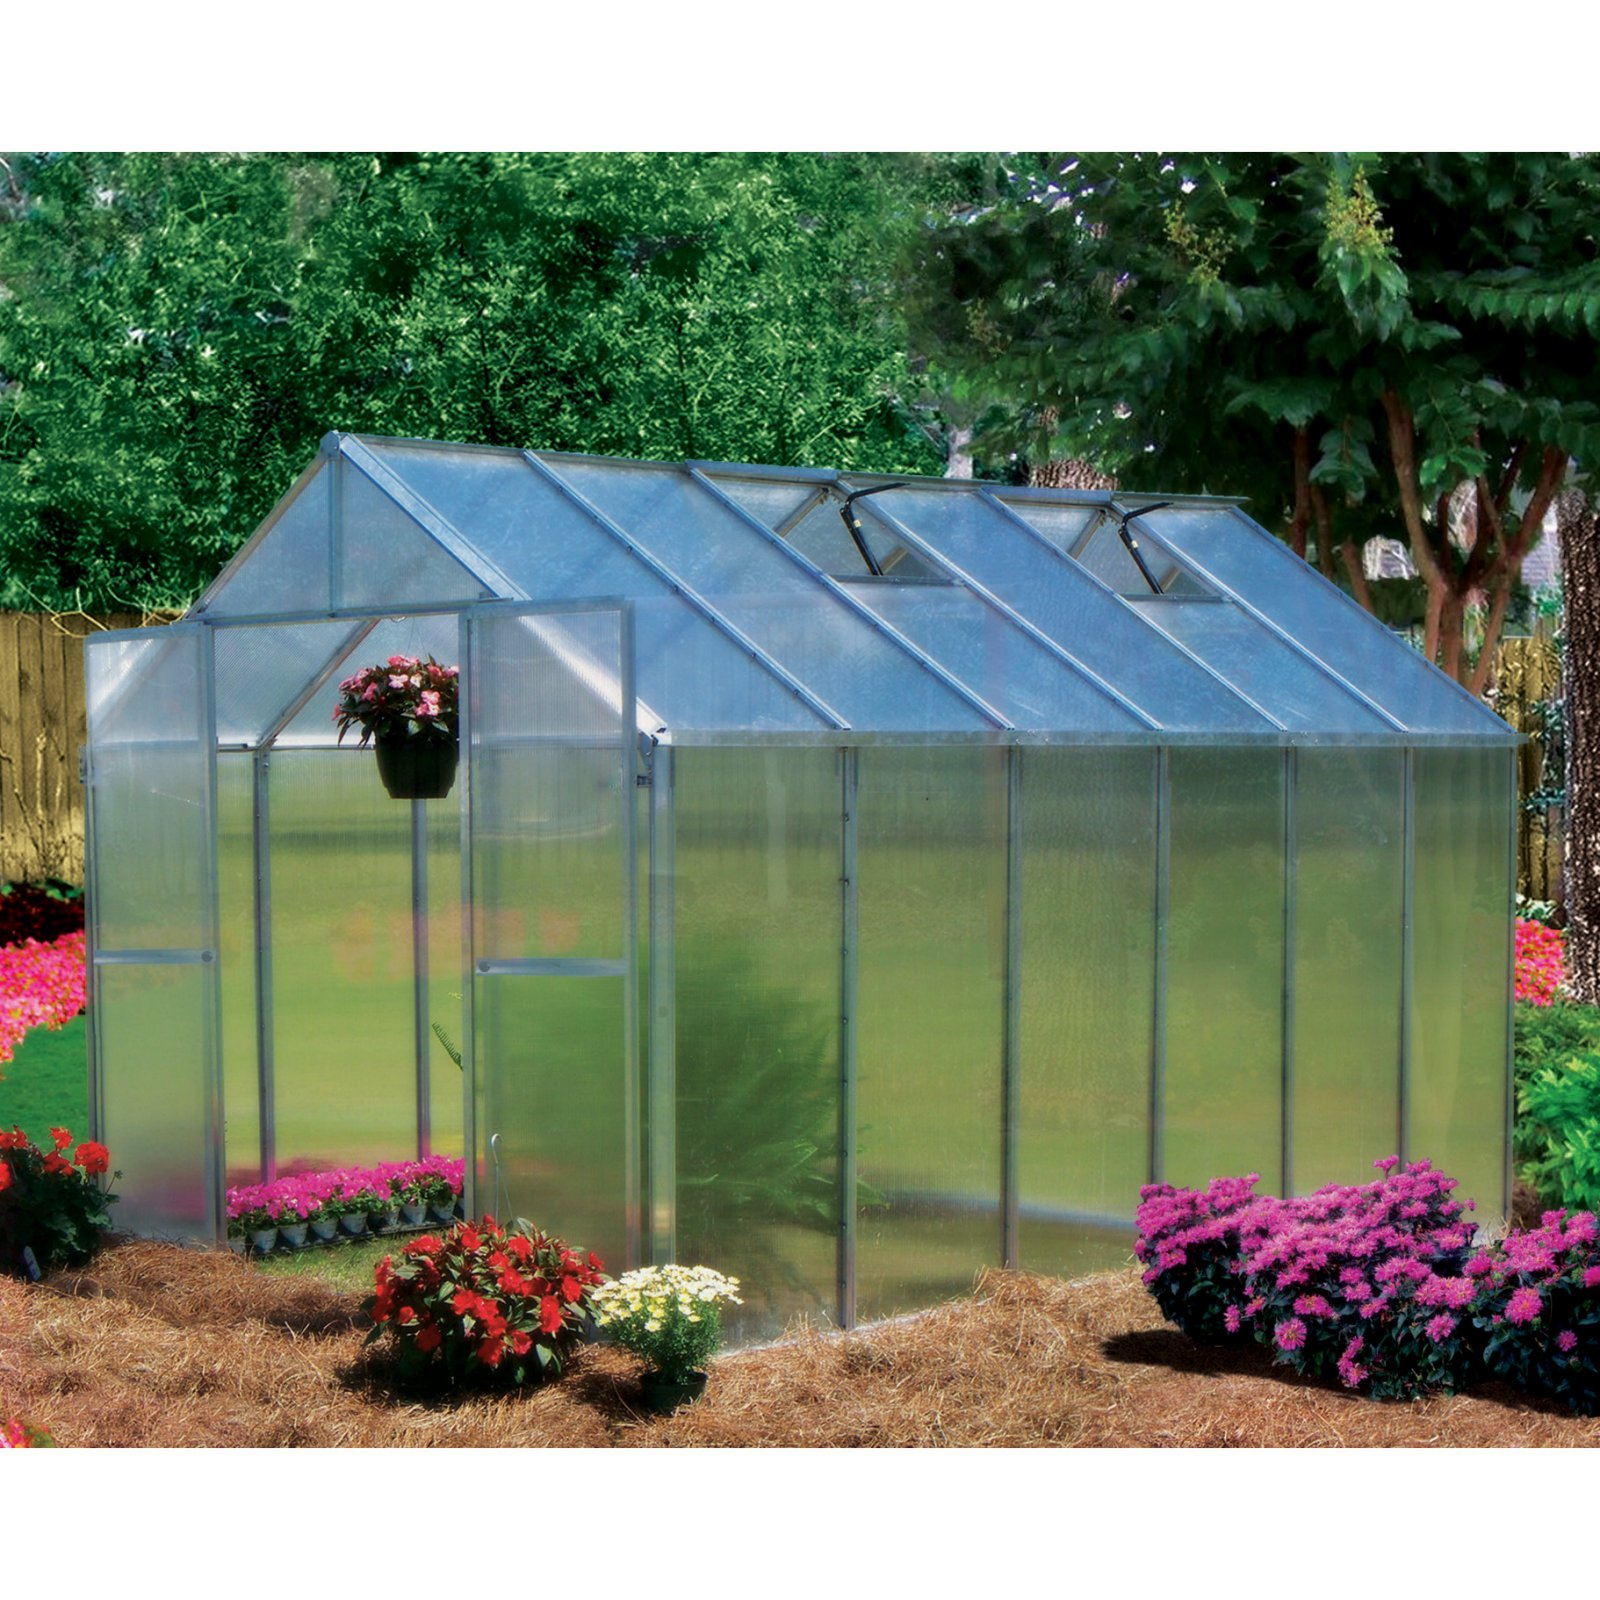 Riverstone Industries Monticello 8 x 12 ft. Premium Green...